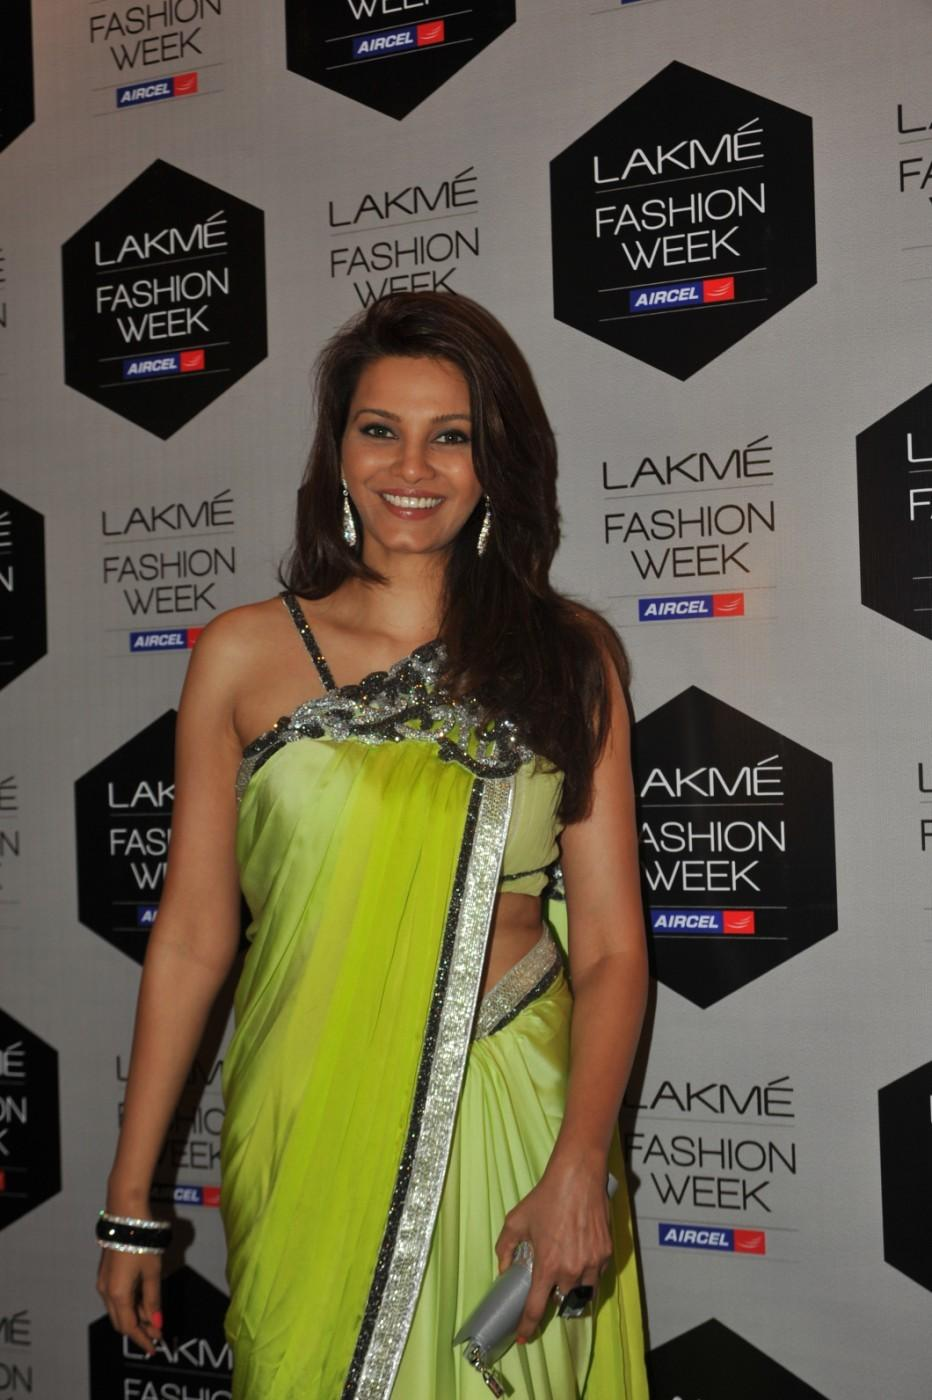 Lakme Fashion Week 2012 Day 5 Photo - Diana Hayden In Saree